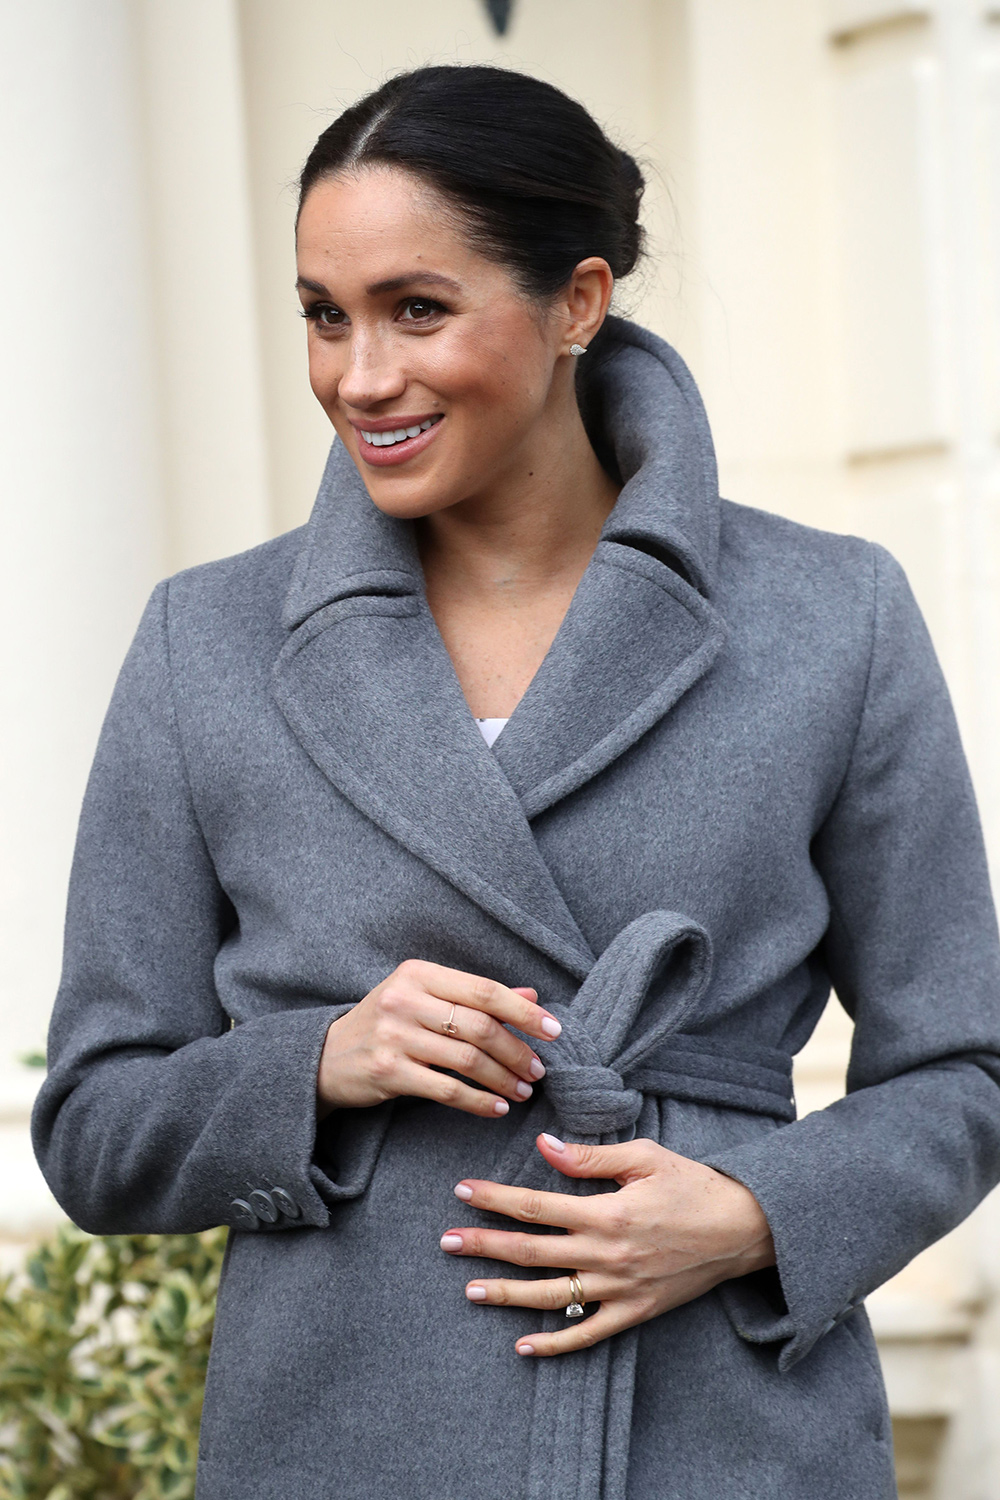 Meghan, Duchess of Sussex visits the Royal Variety Charity's Brinsworth House on December 18, 2018 in Twickenham, England.